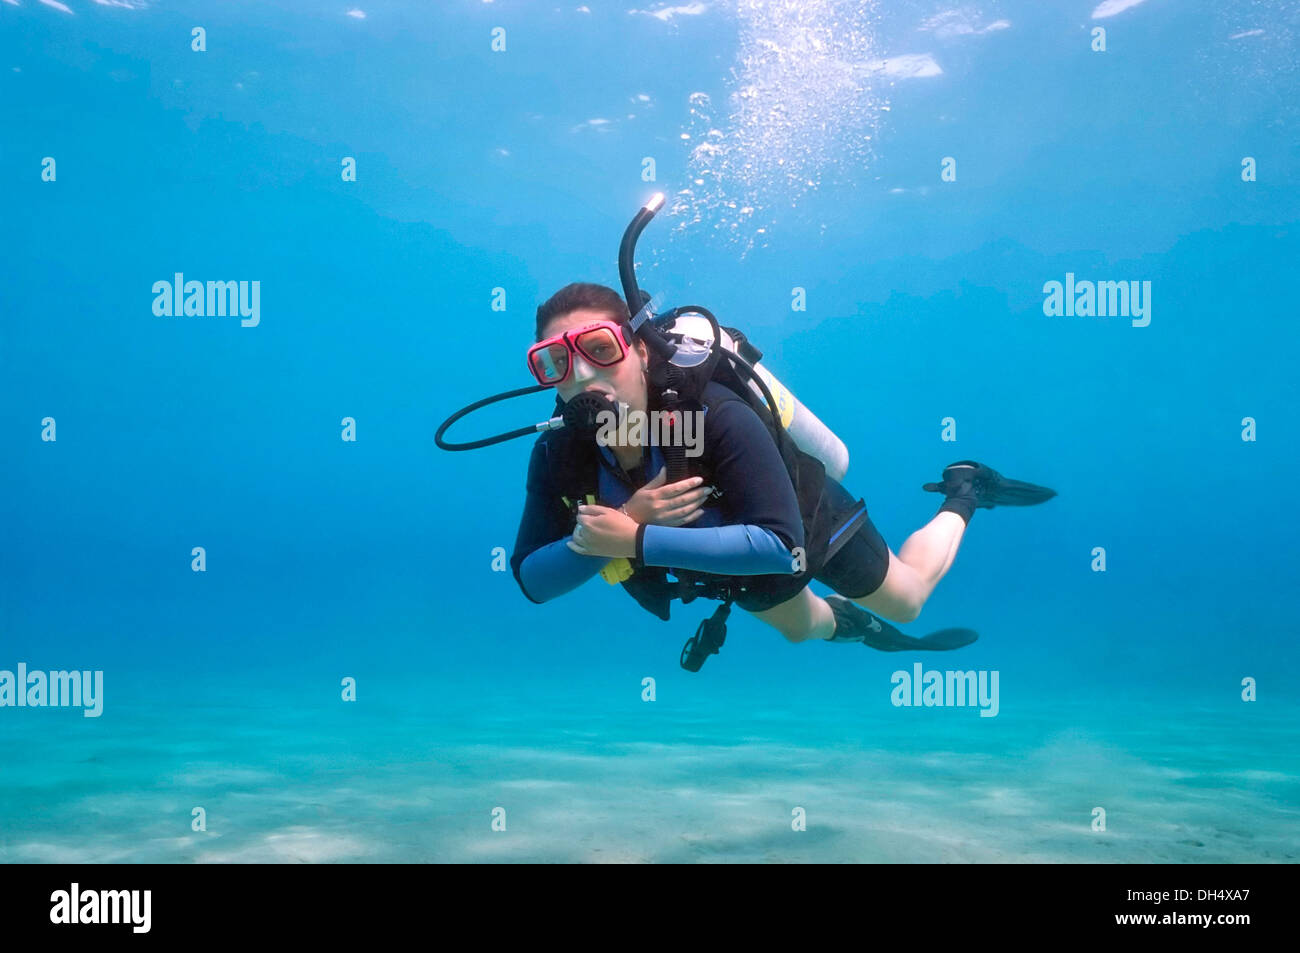 Horizontal portrait of a woman scuba diving in the sea. - Stock Image